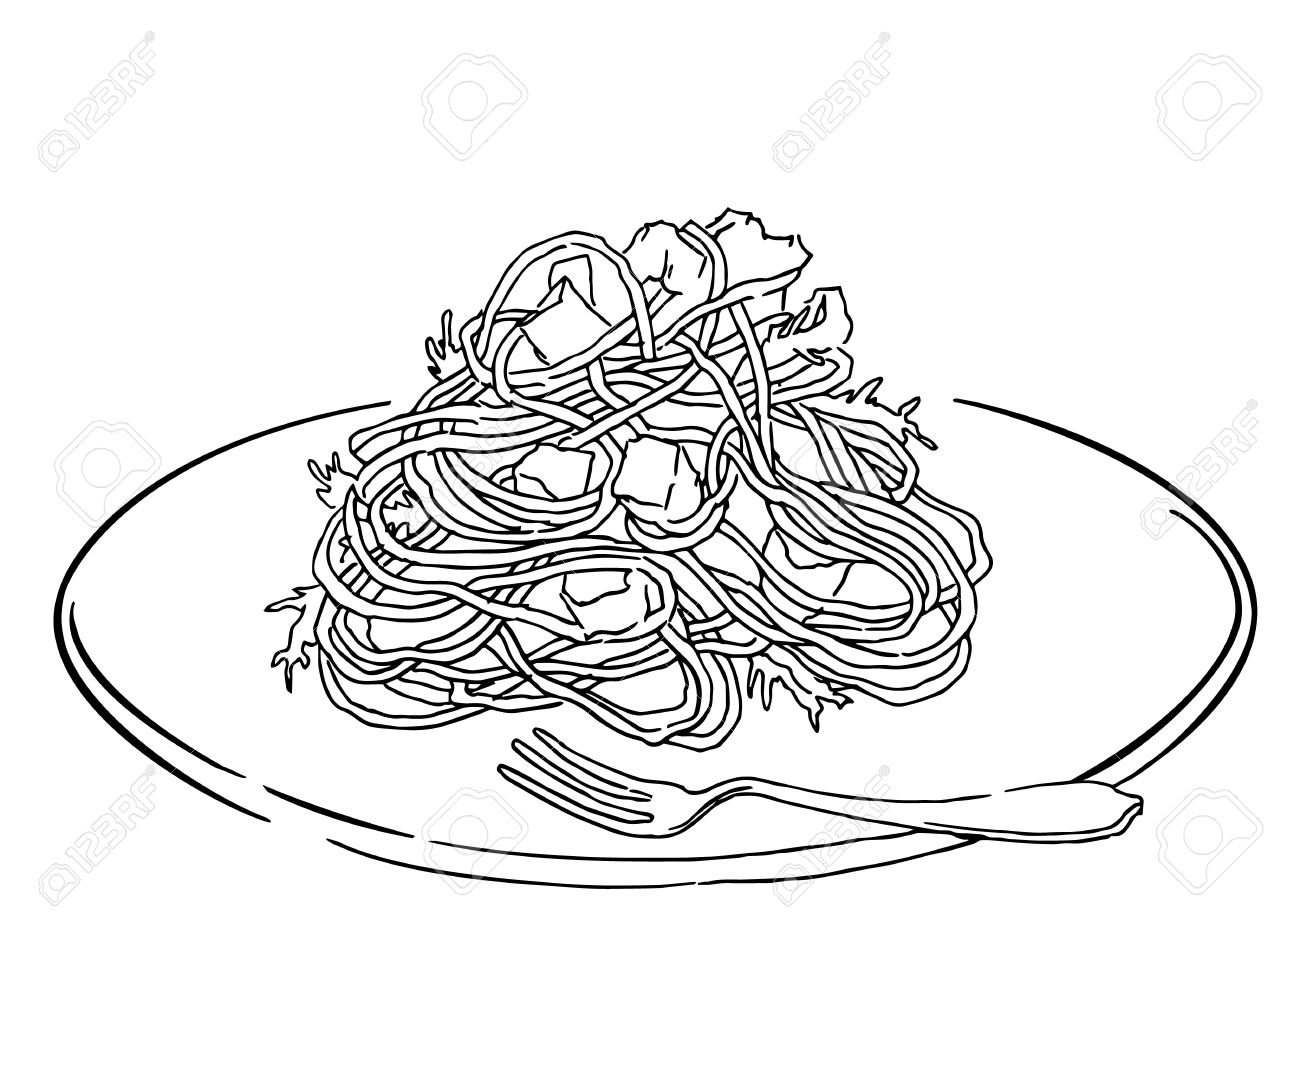 1300x1083 Vector Sketch Of Spaghetti Plate. Italian Food Draw. Isolated